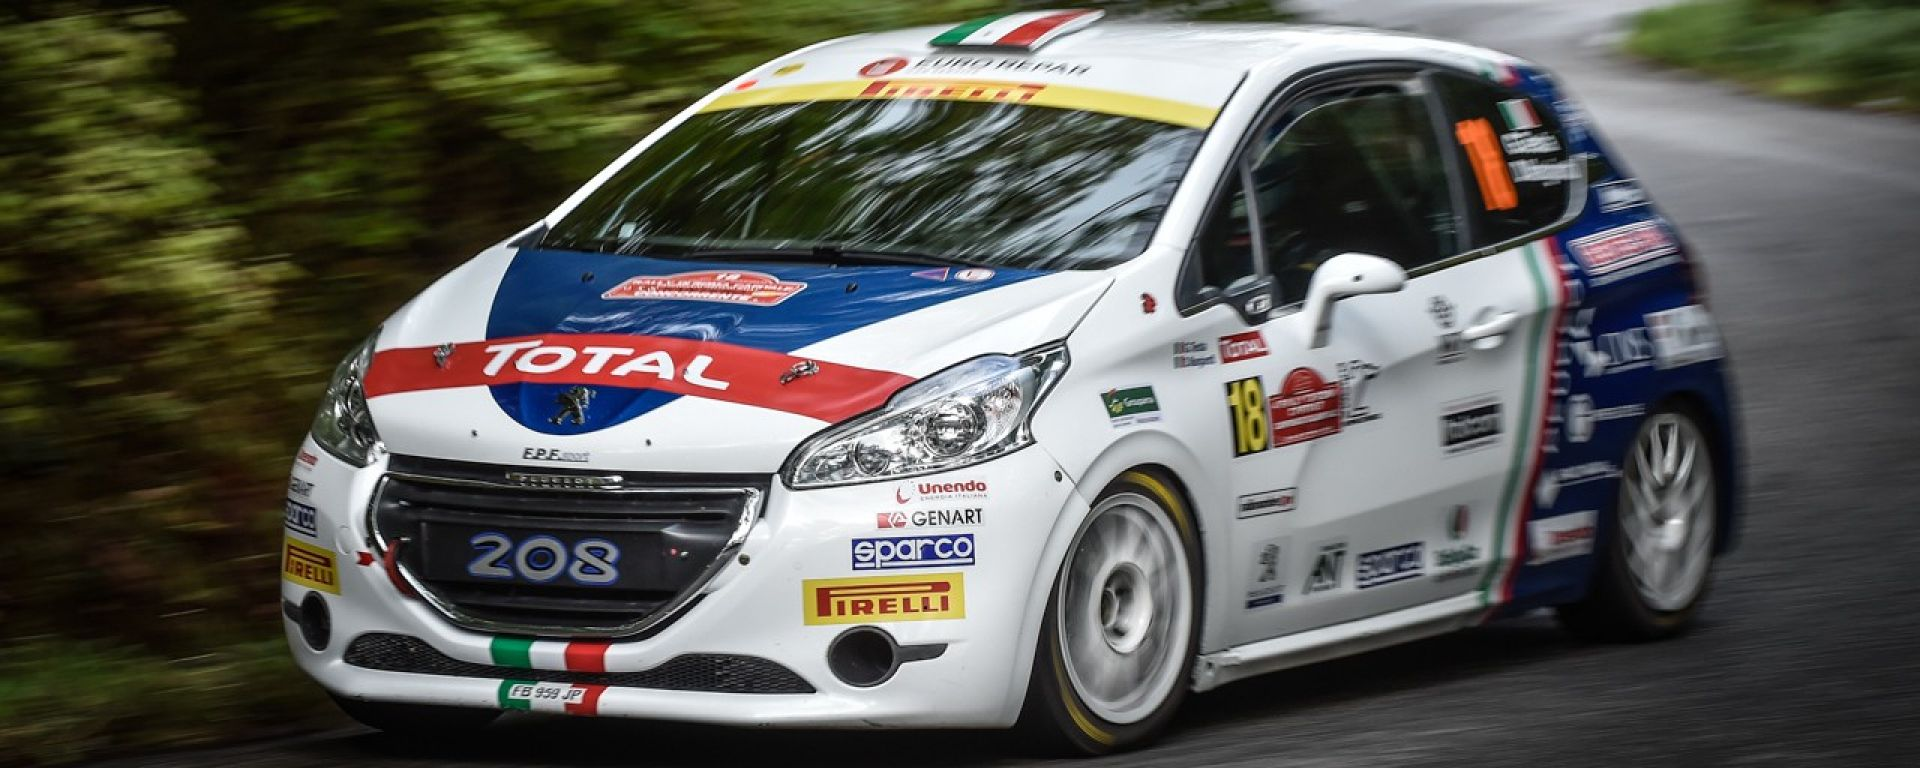 Peugeot 208 Junior - Campionato Italiano Rally 2016